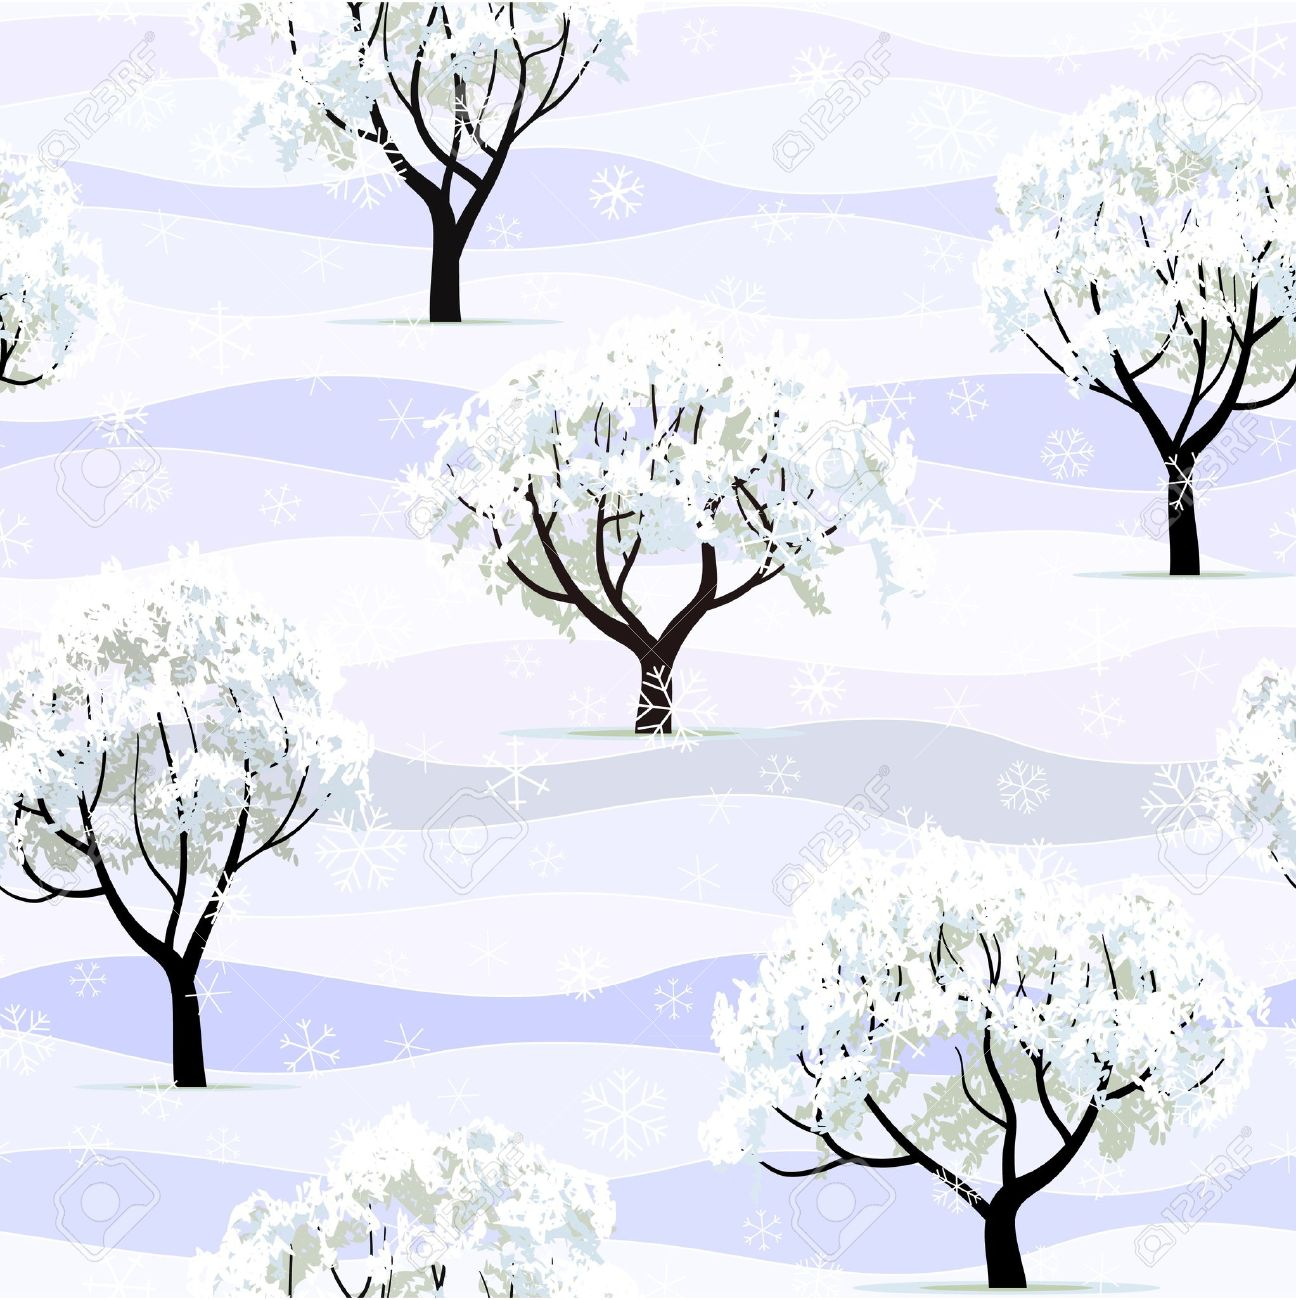 winter garden tree snow covered seamless background royalty free